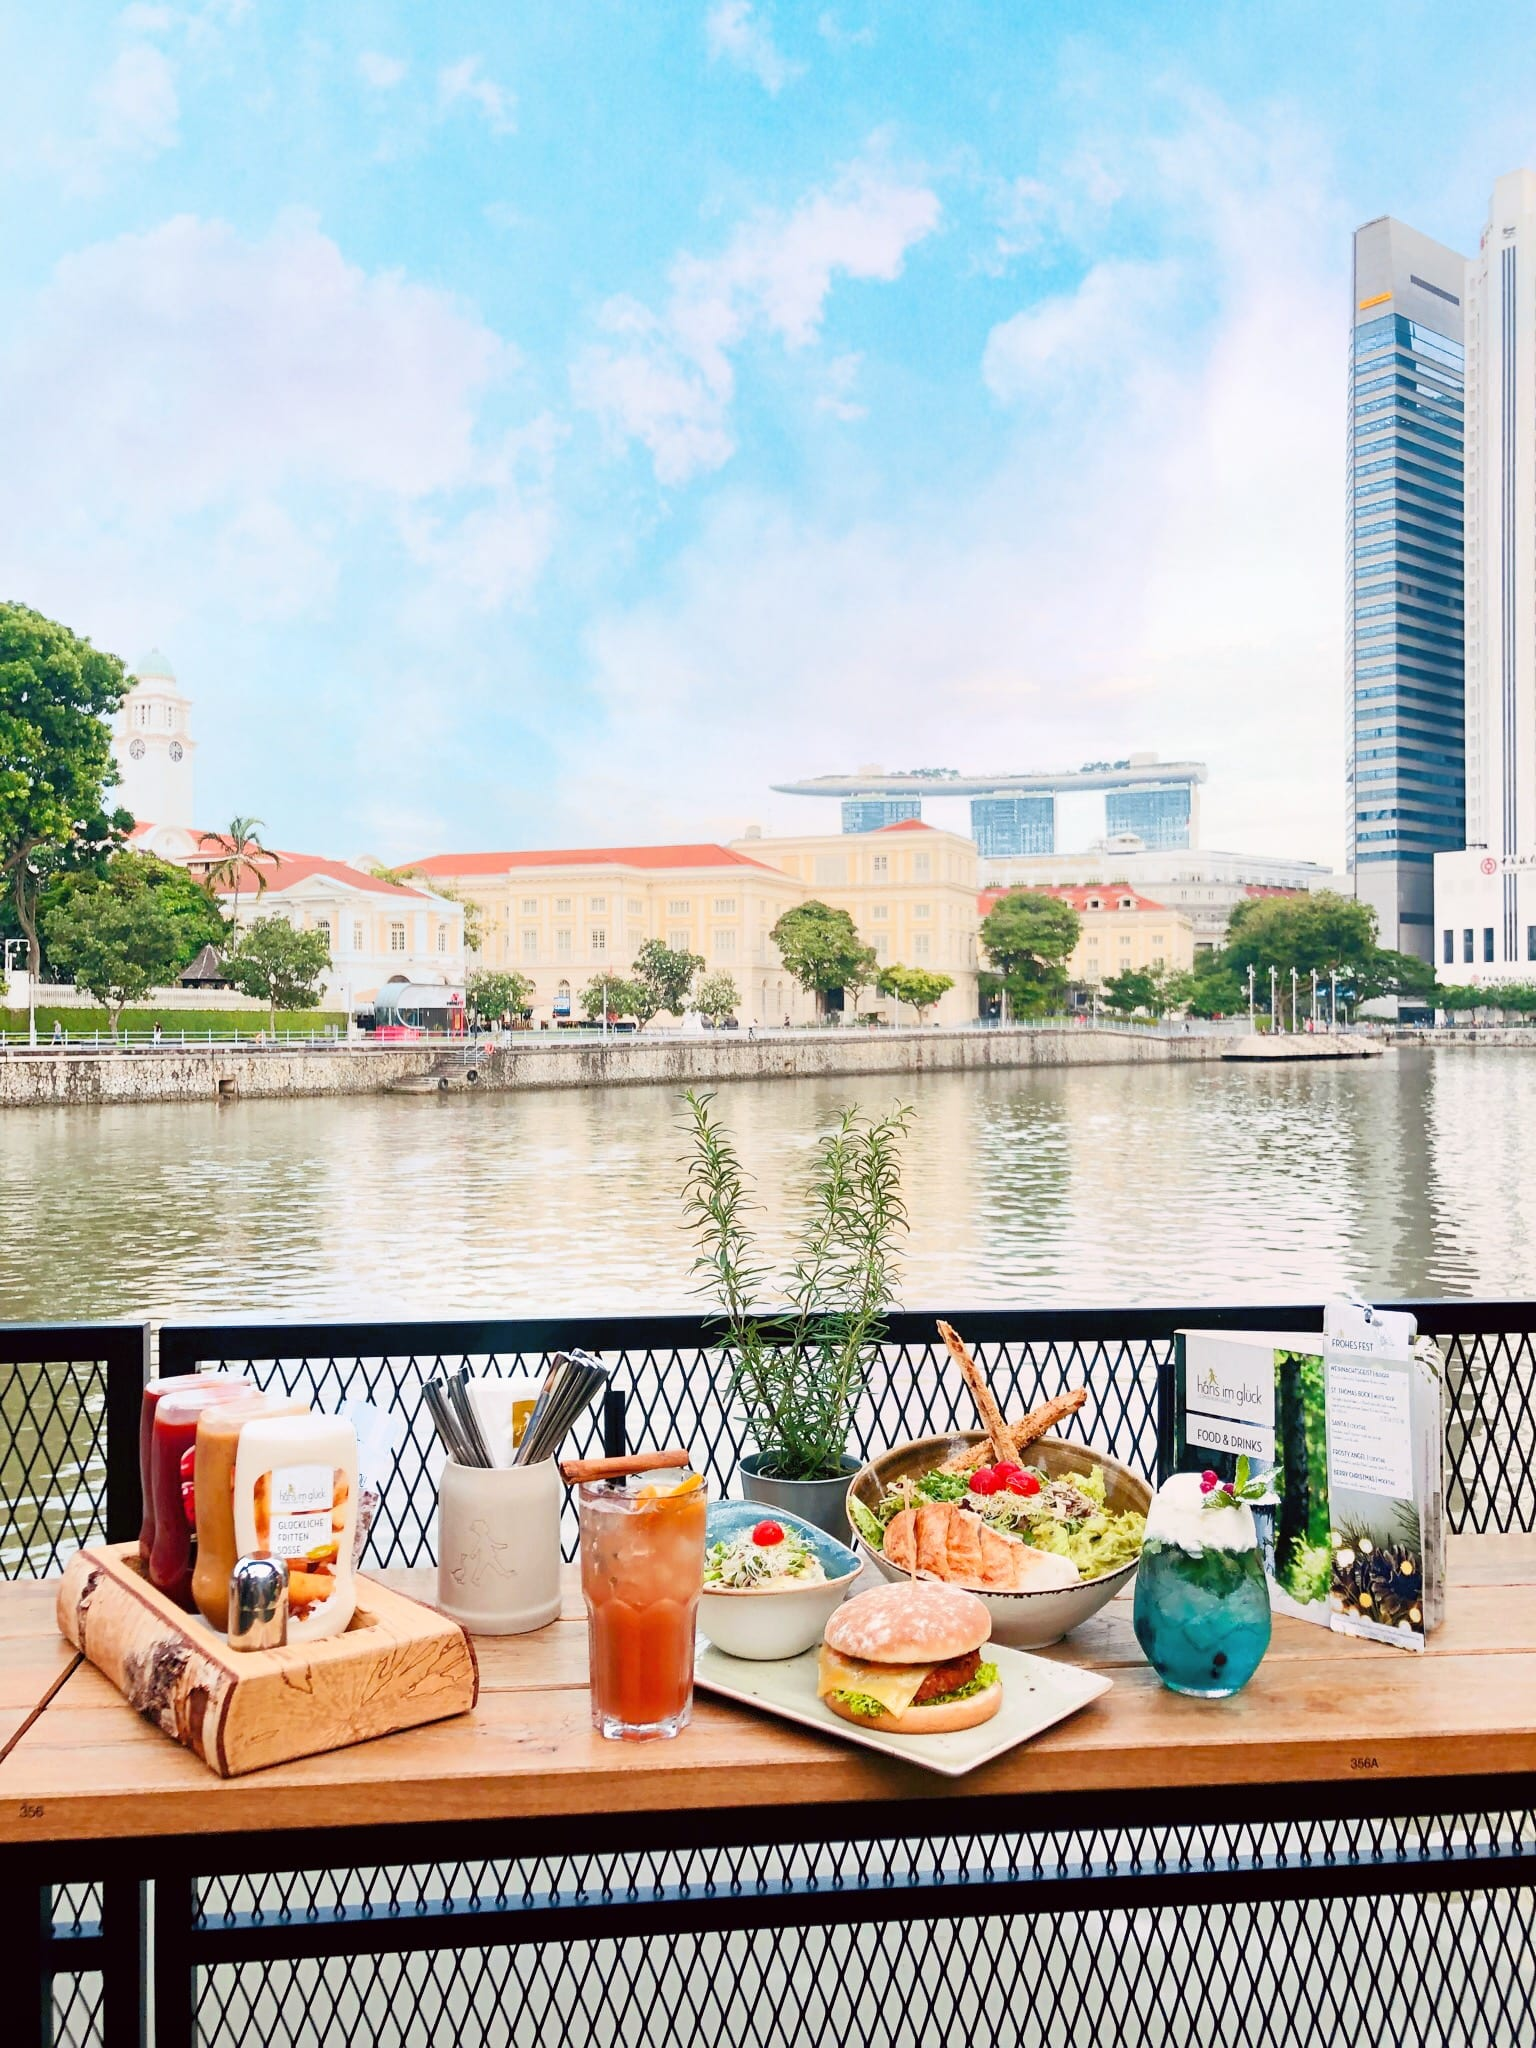 western dishes on table with view of river